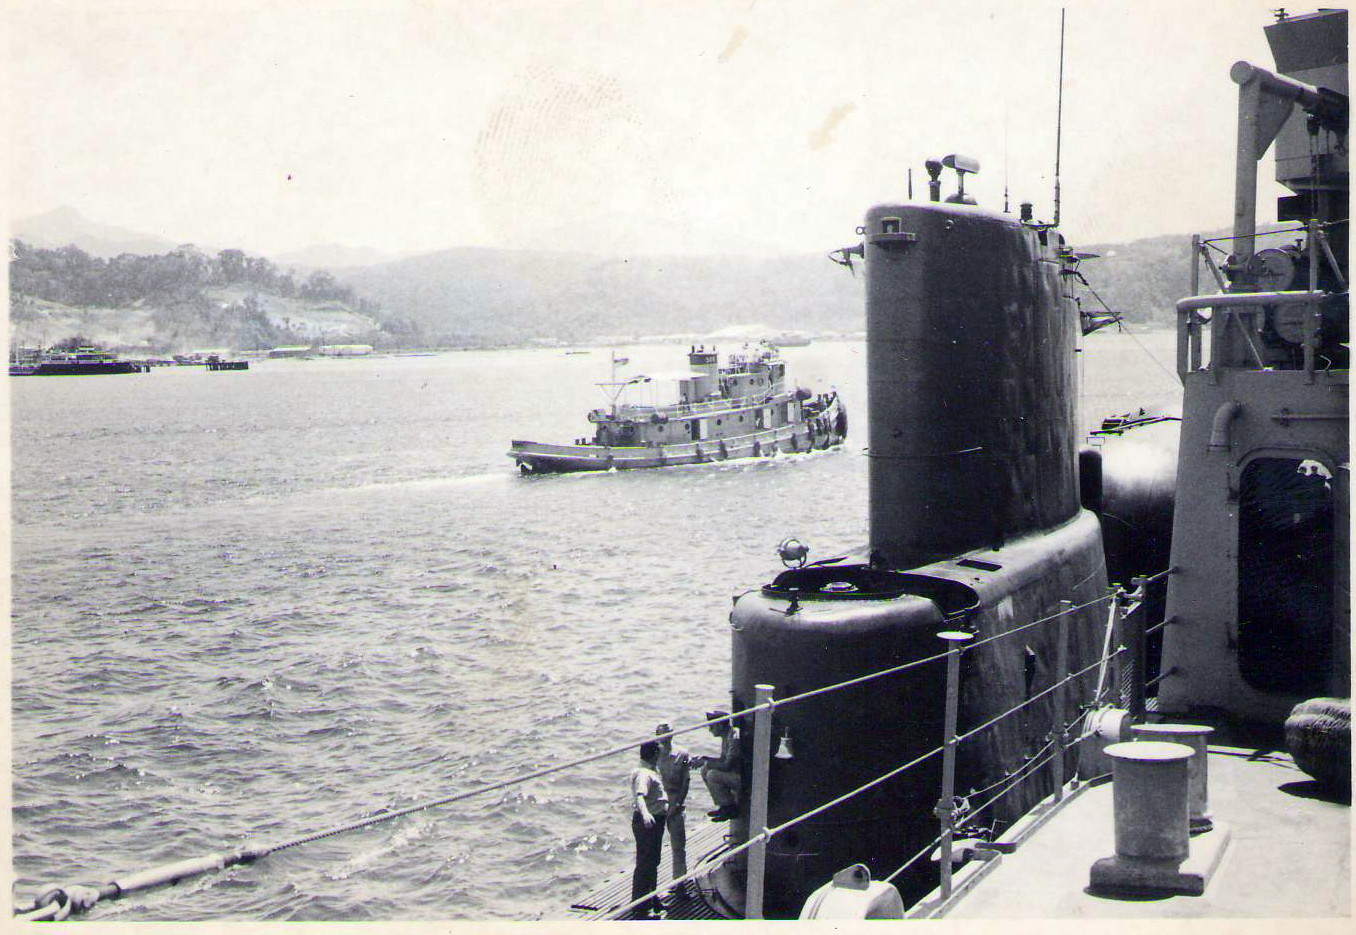 1969 US Sub alongside Subic Bay